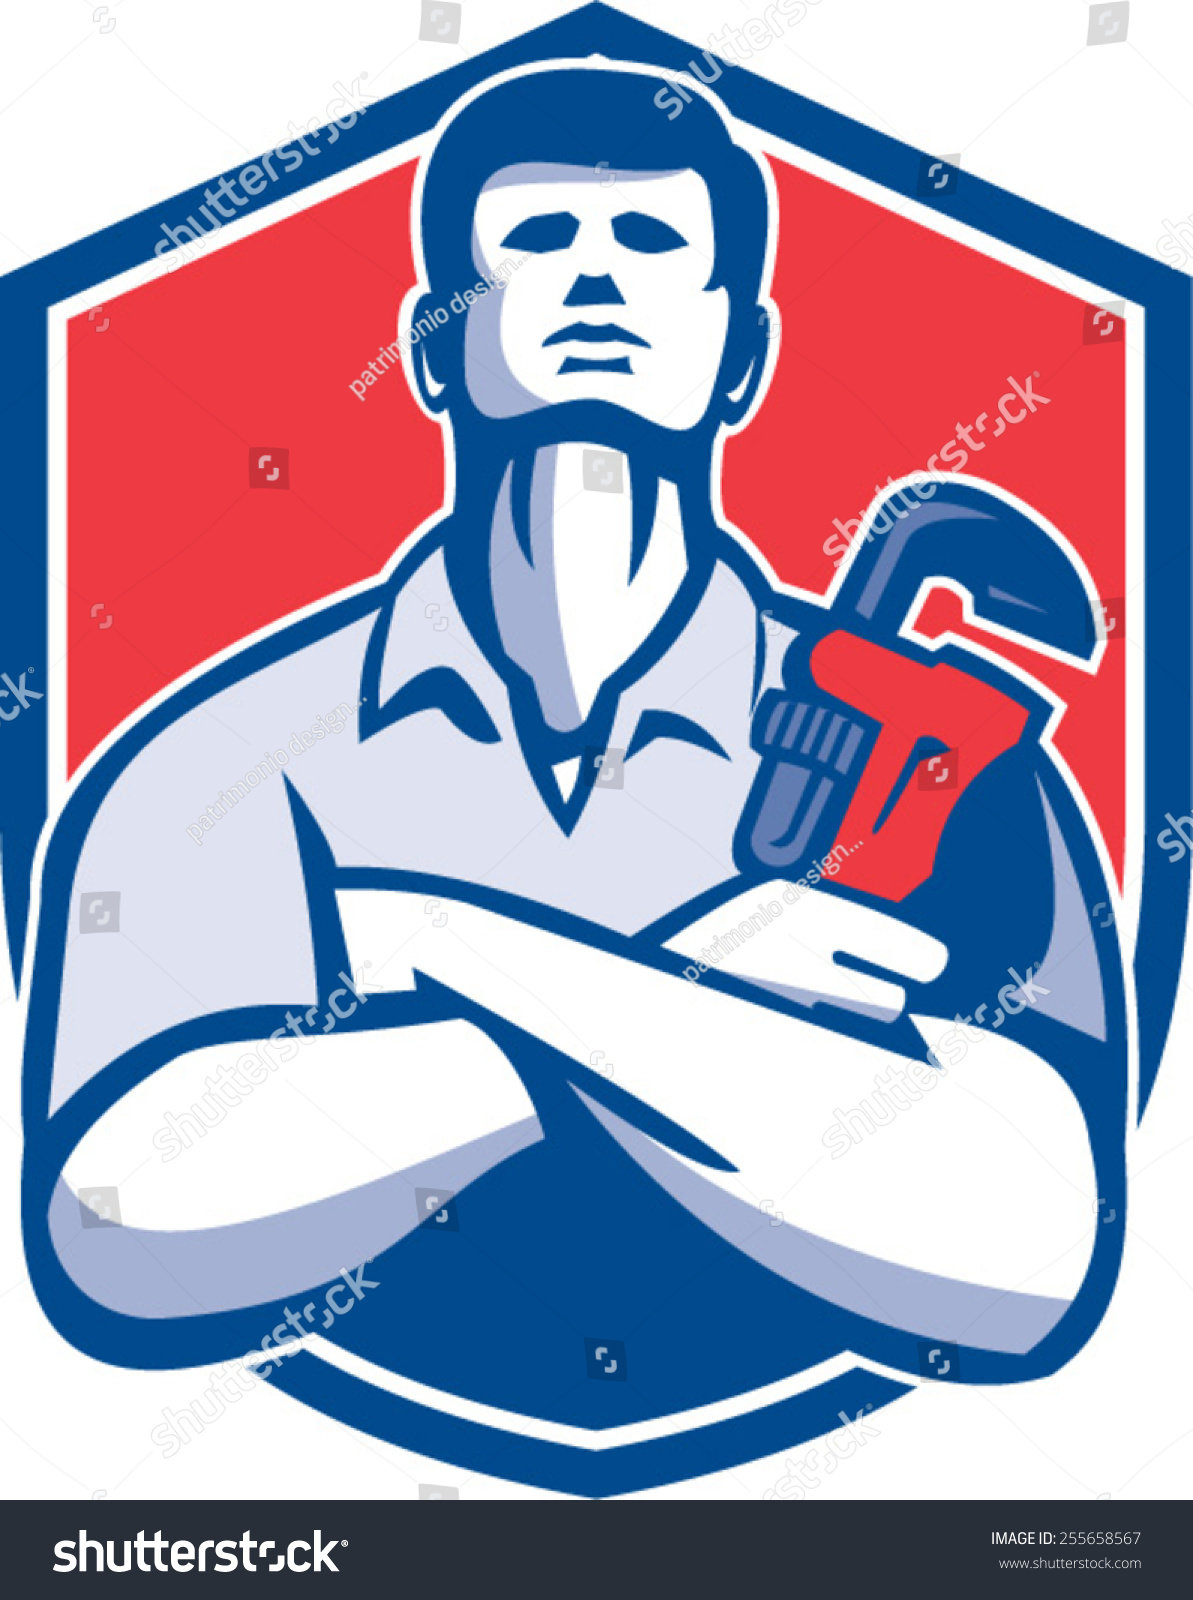 Illustration Handyman Plumber Repairman Worker Arms Stock Vector ...